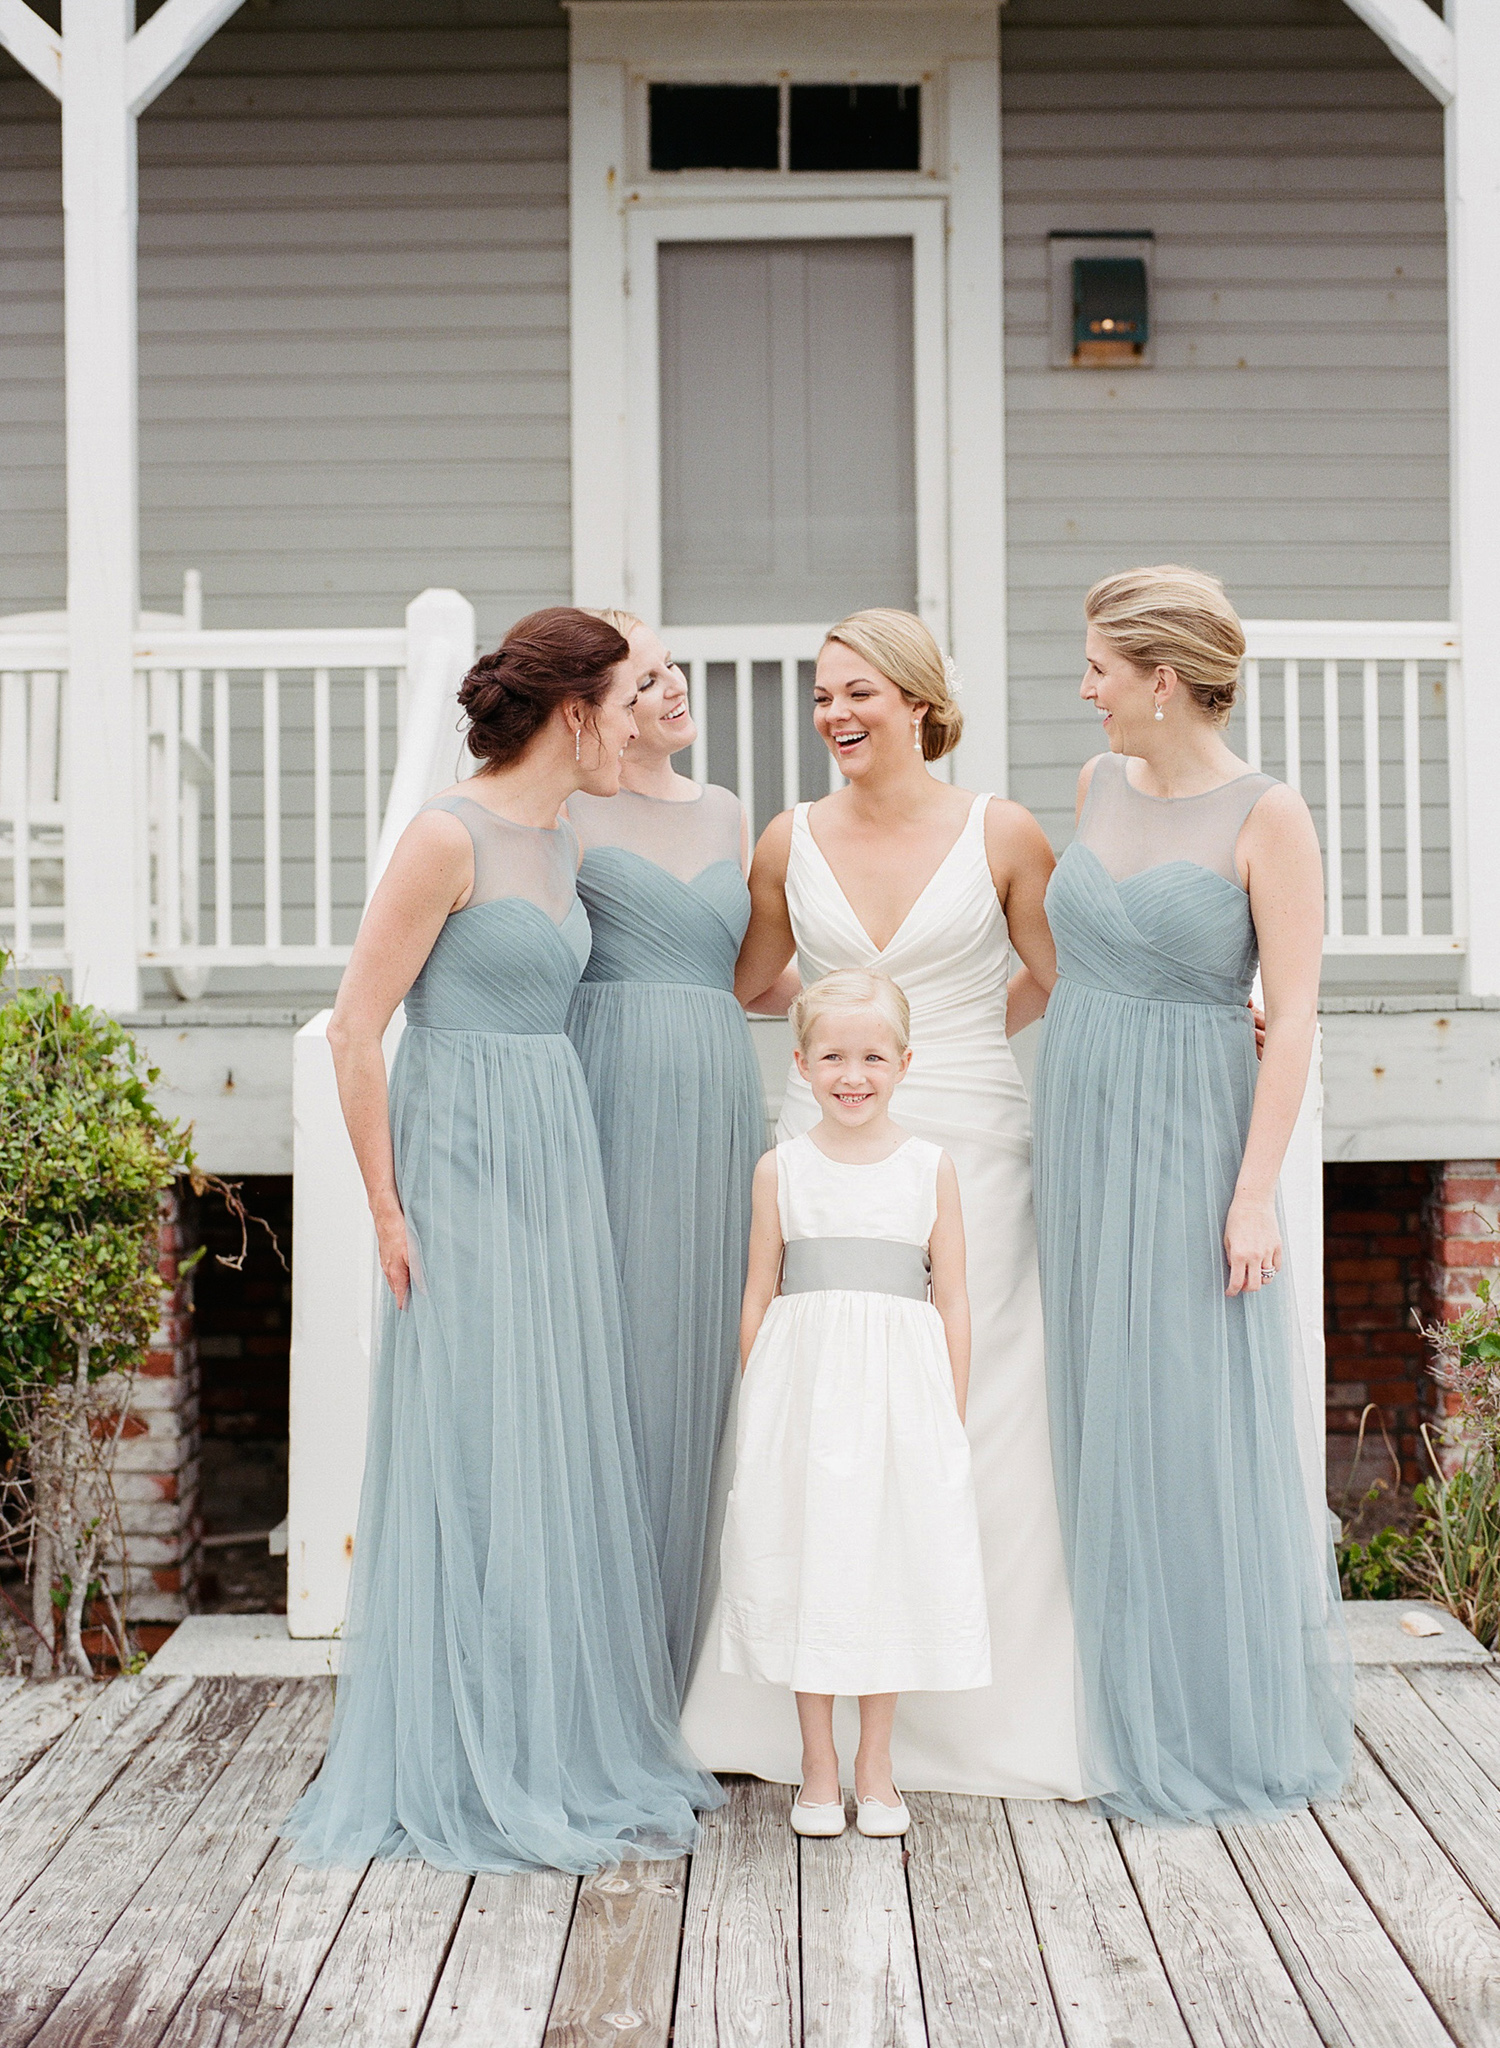 Bald Head Island Wedding Film Photographer 11.jpg